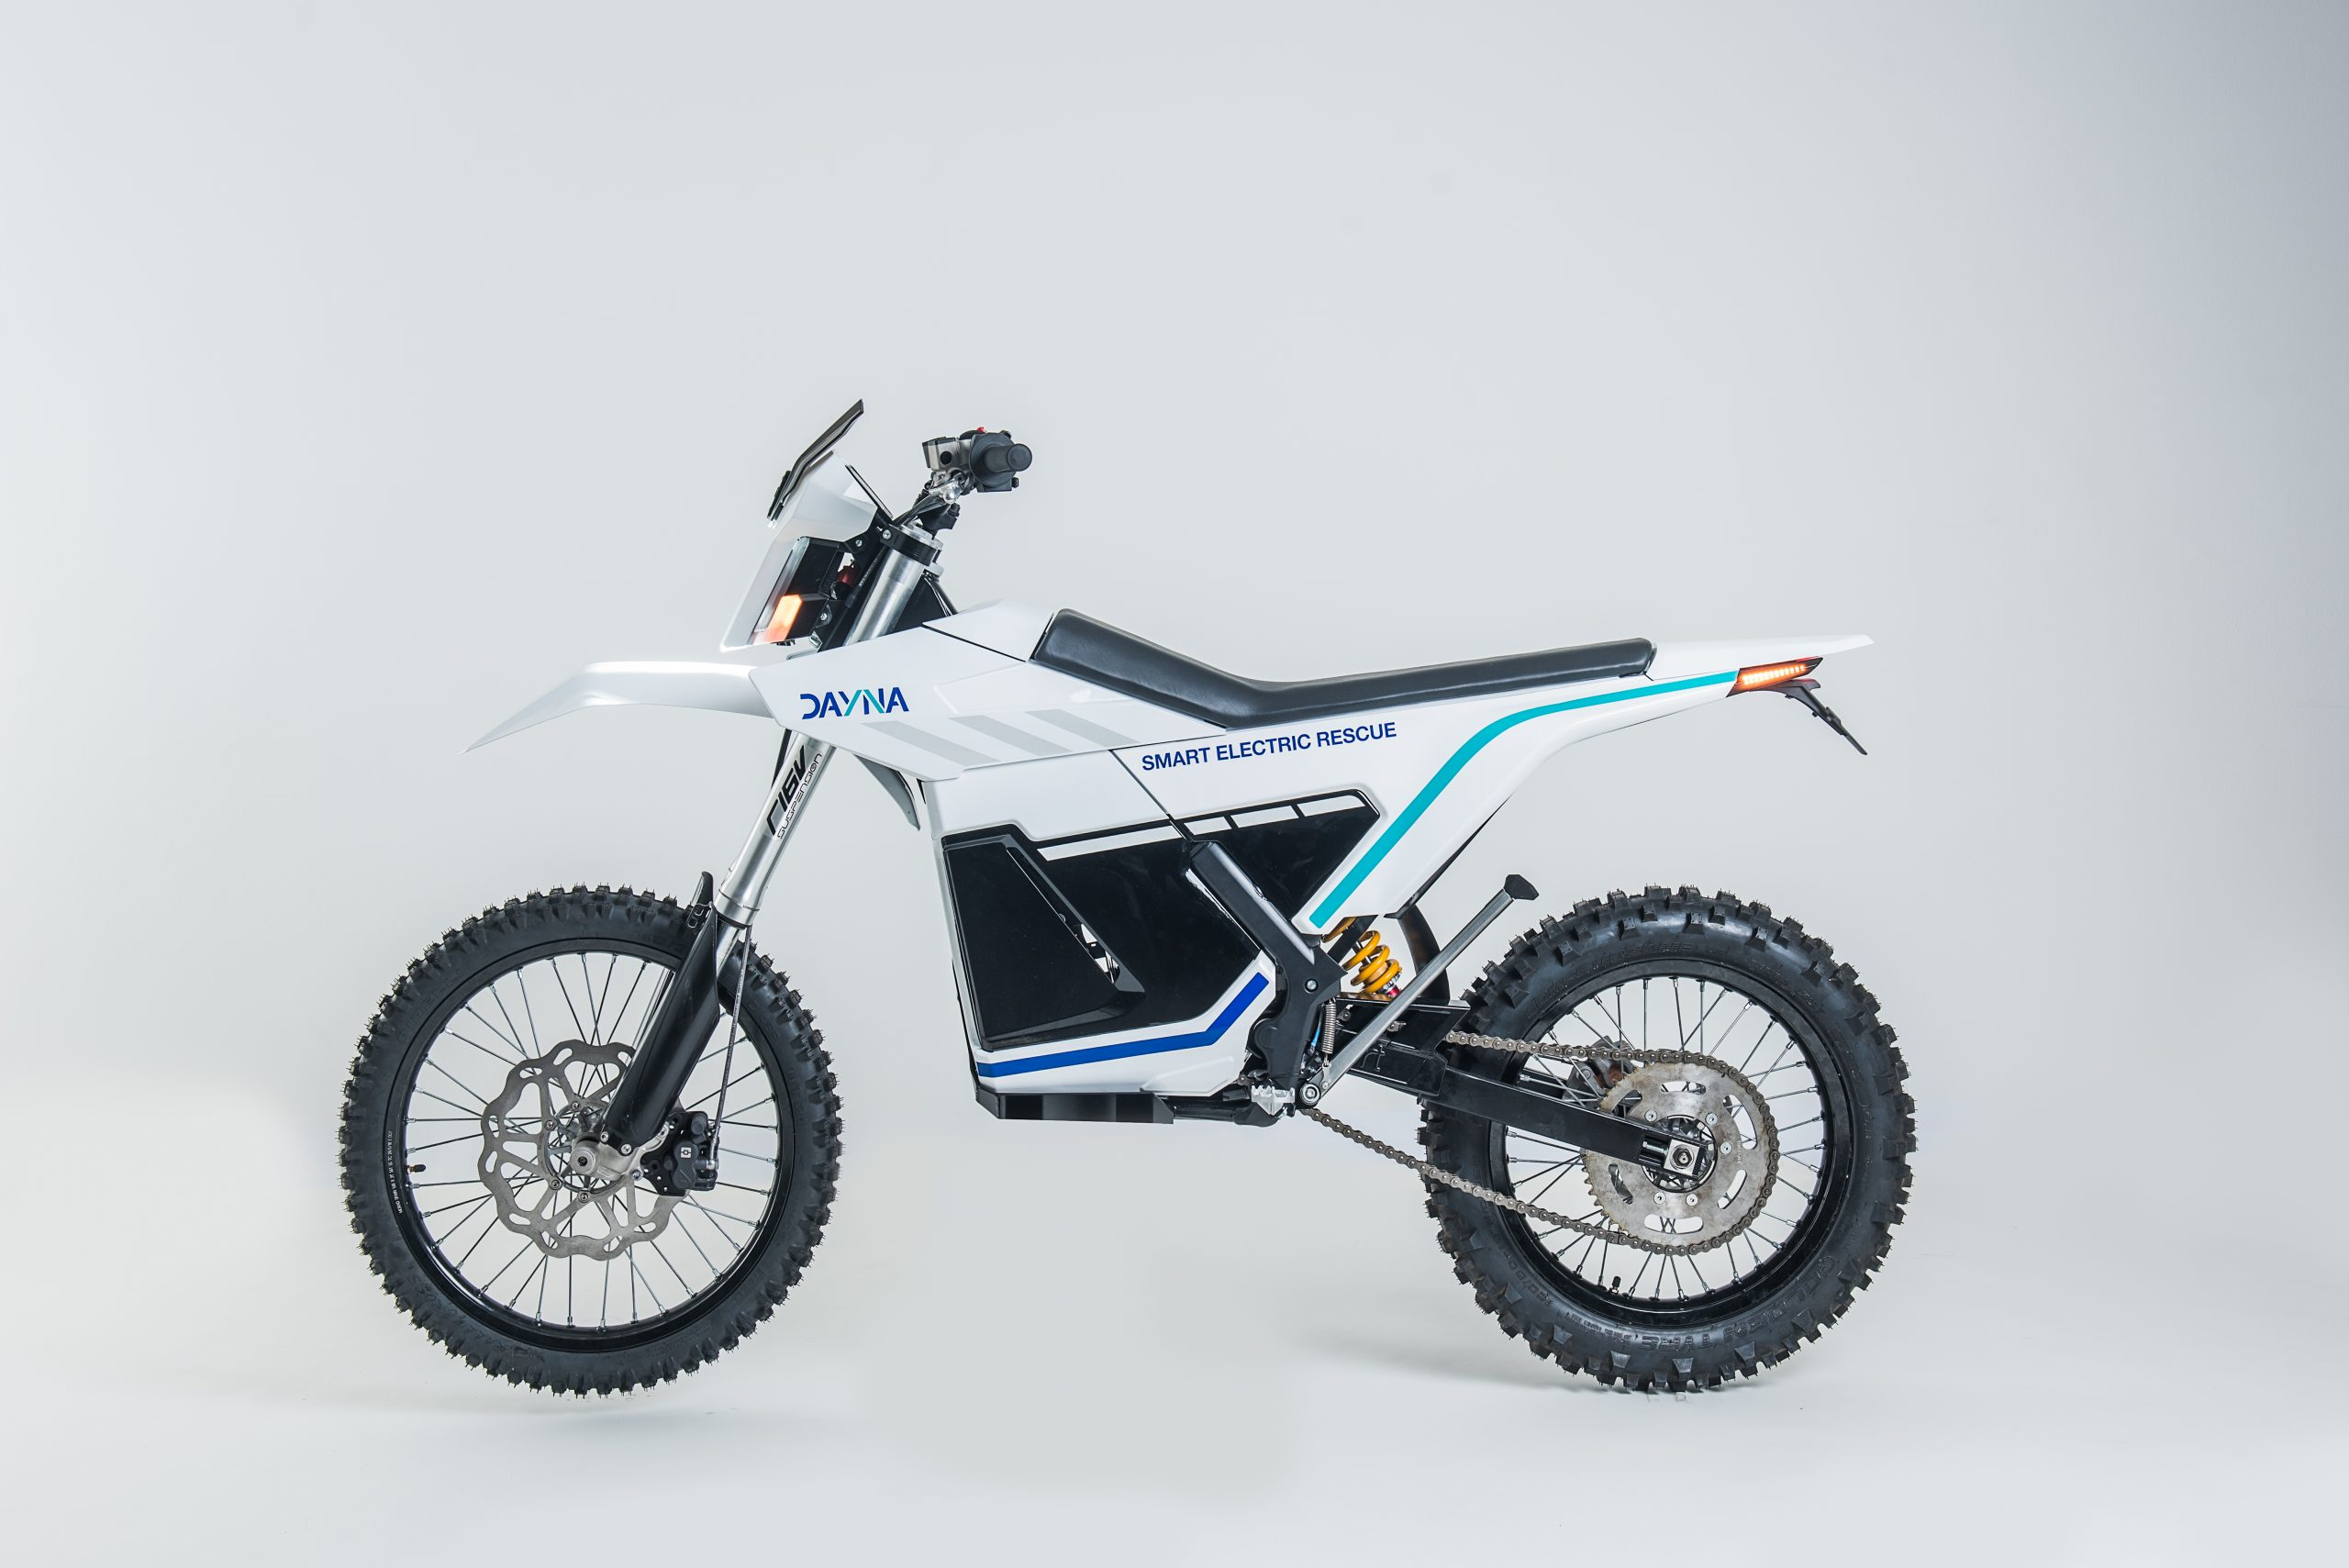 Mountain rescue motorcycle with 3D printed parts.